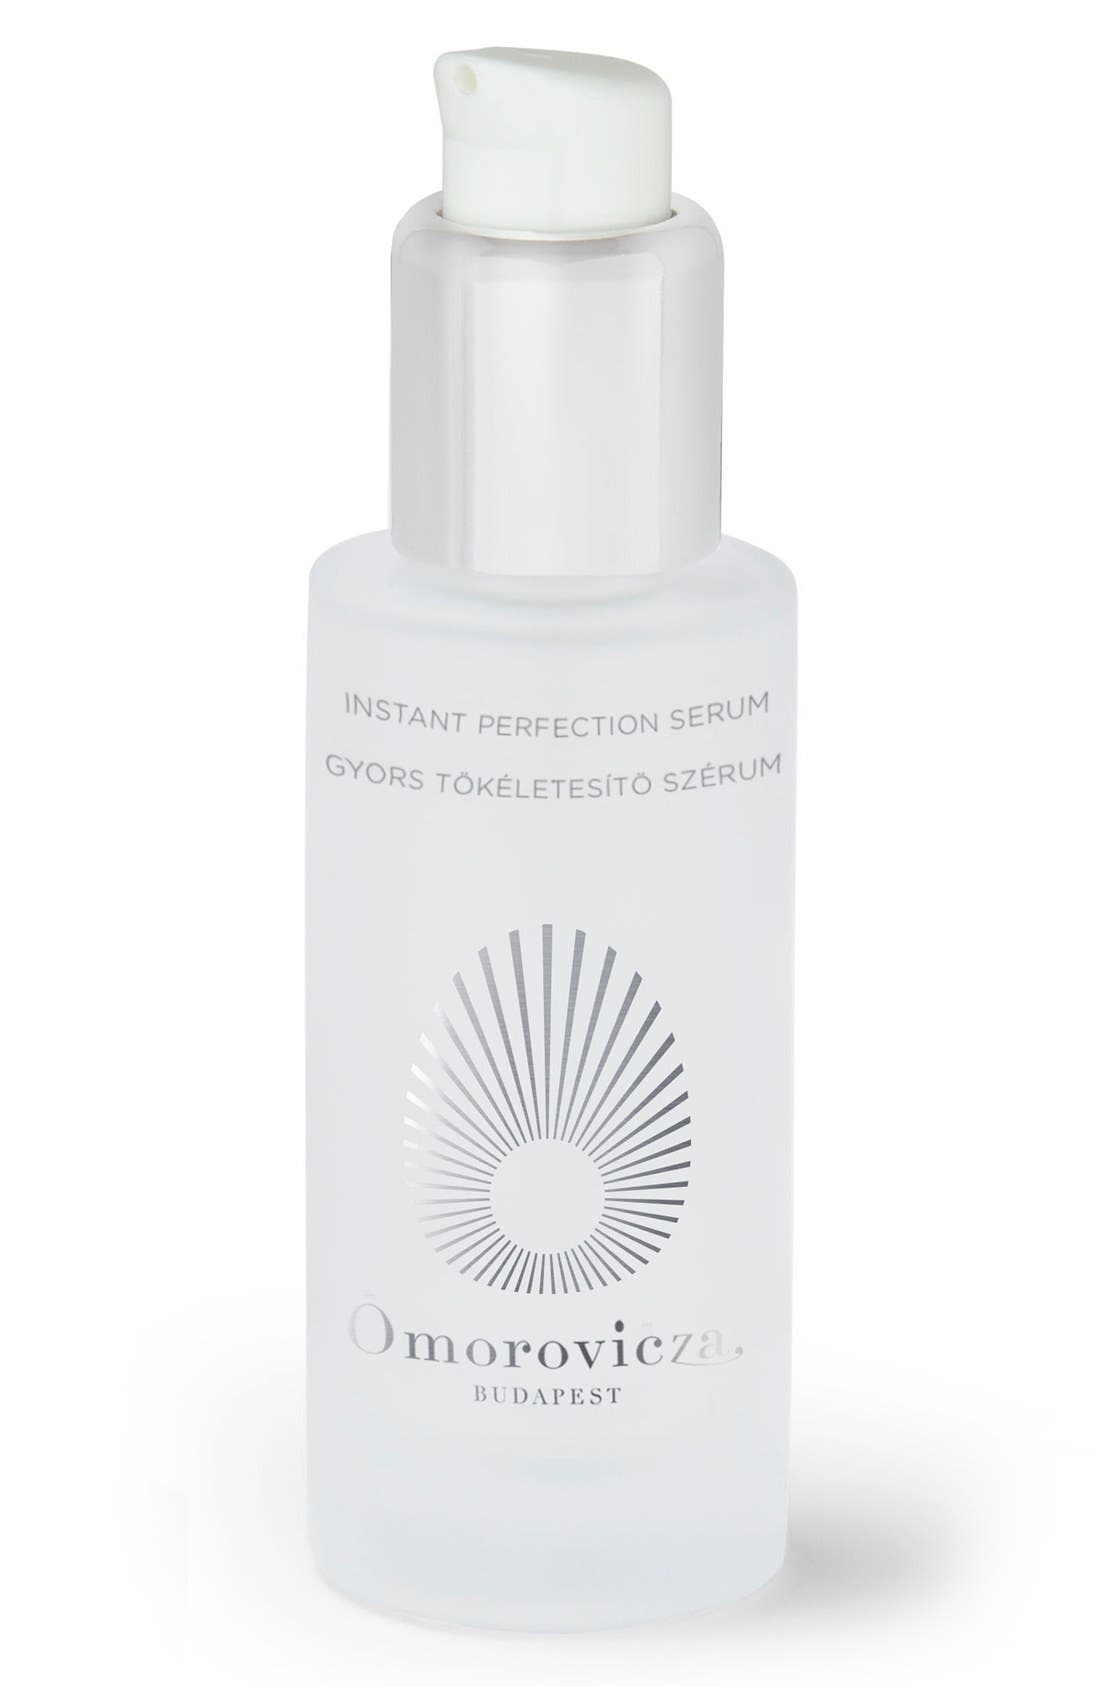 Omorovicza 'Instant Perfection' Serum